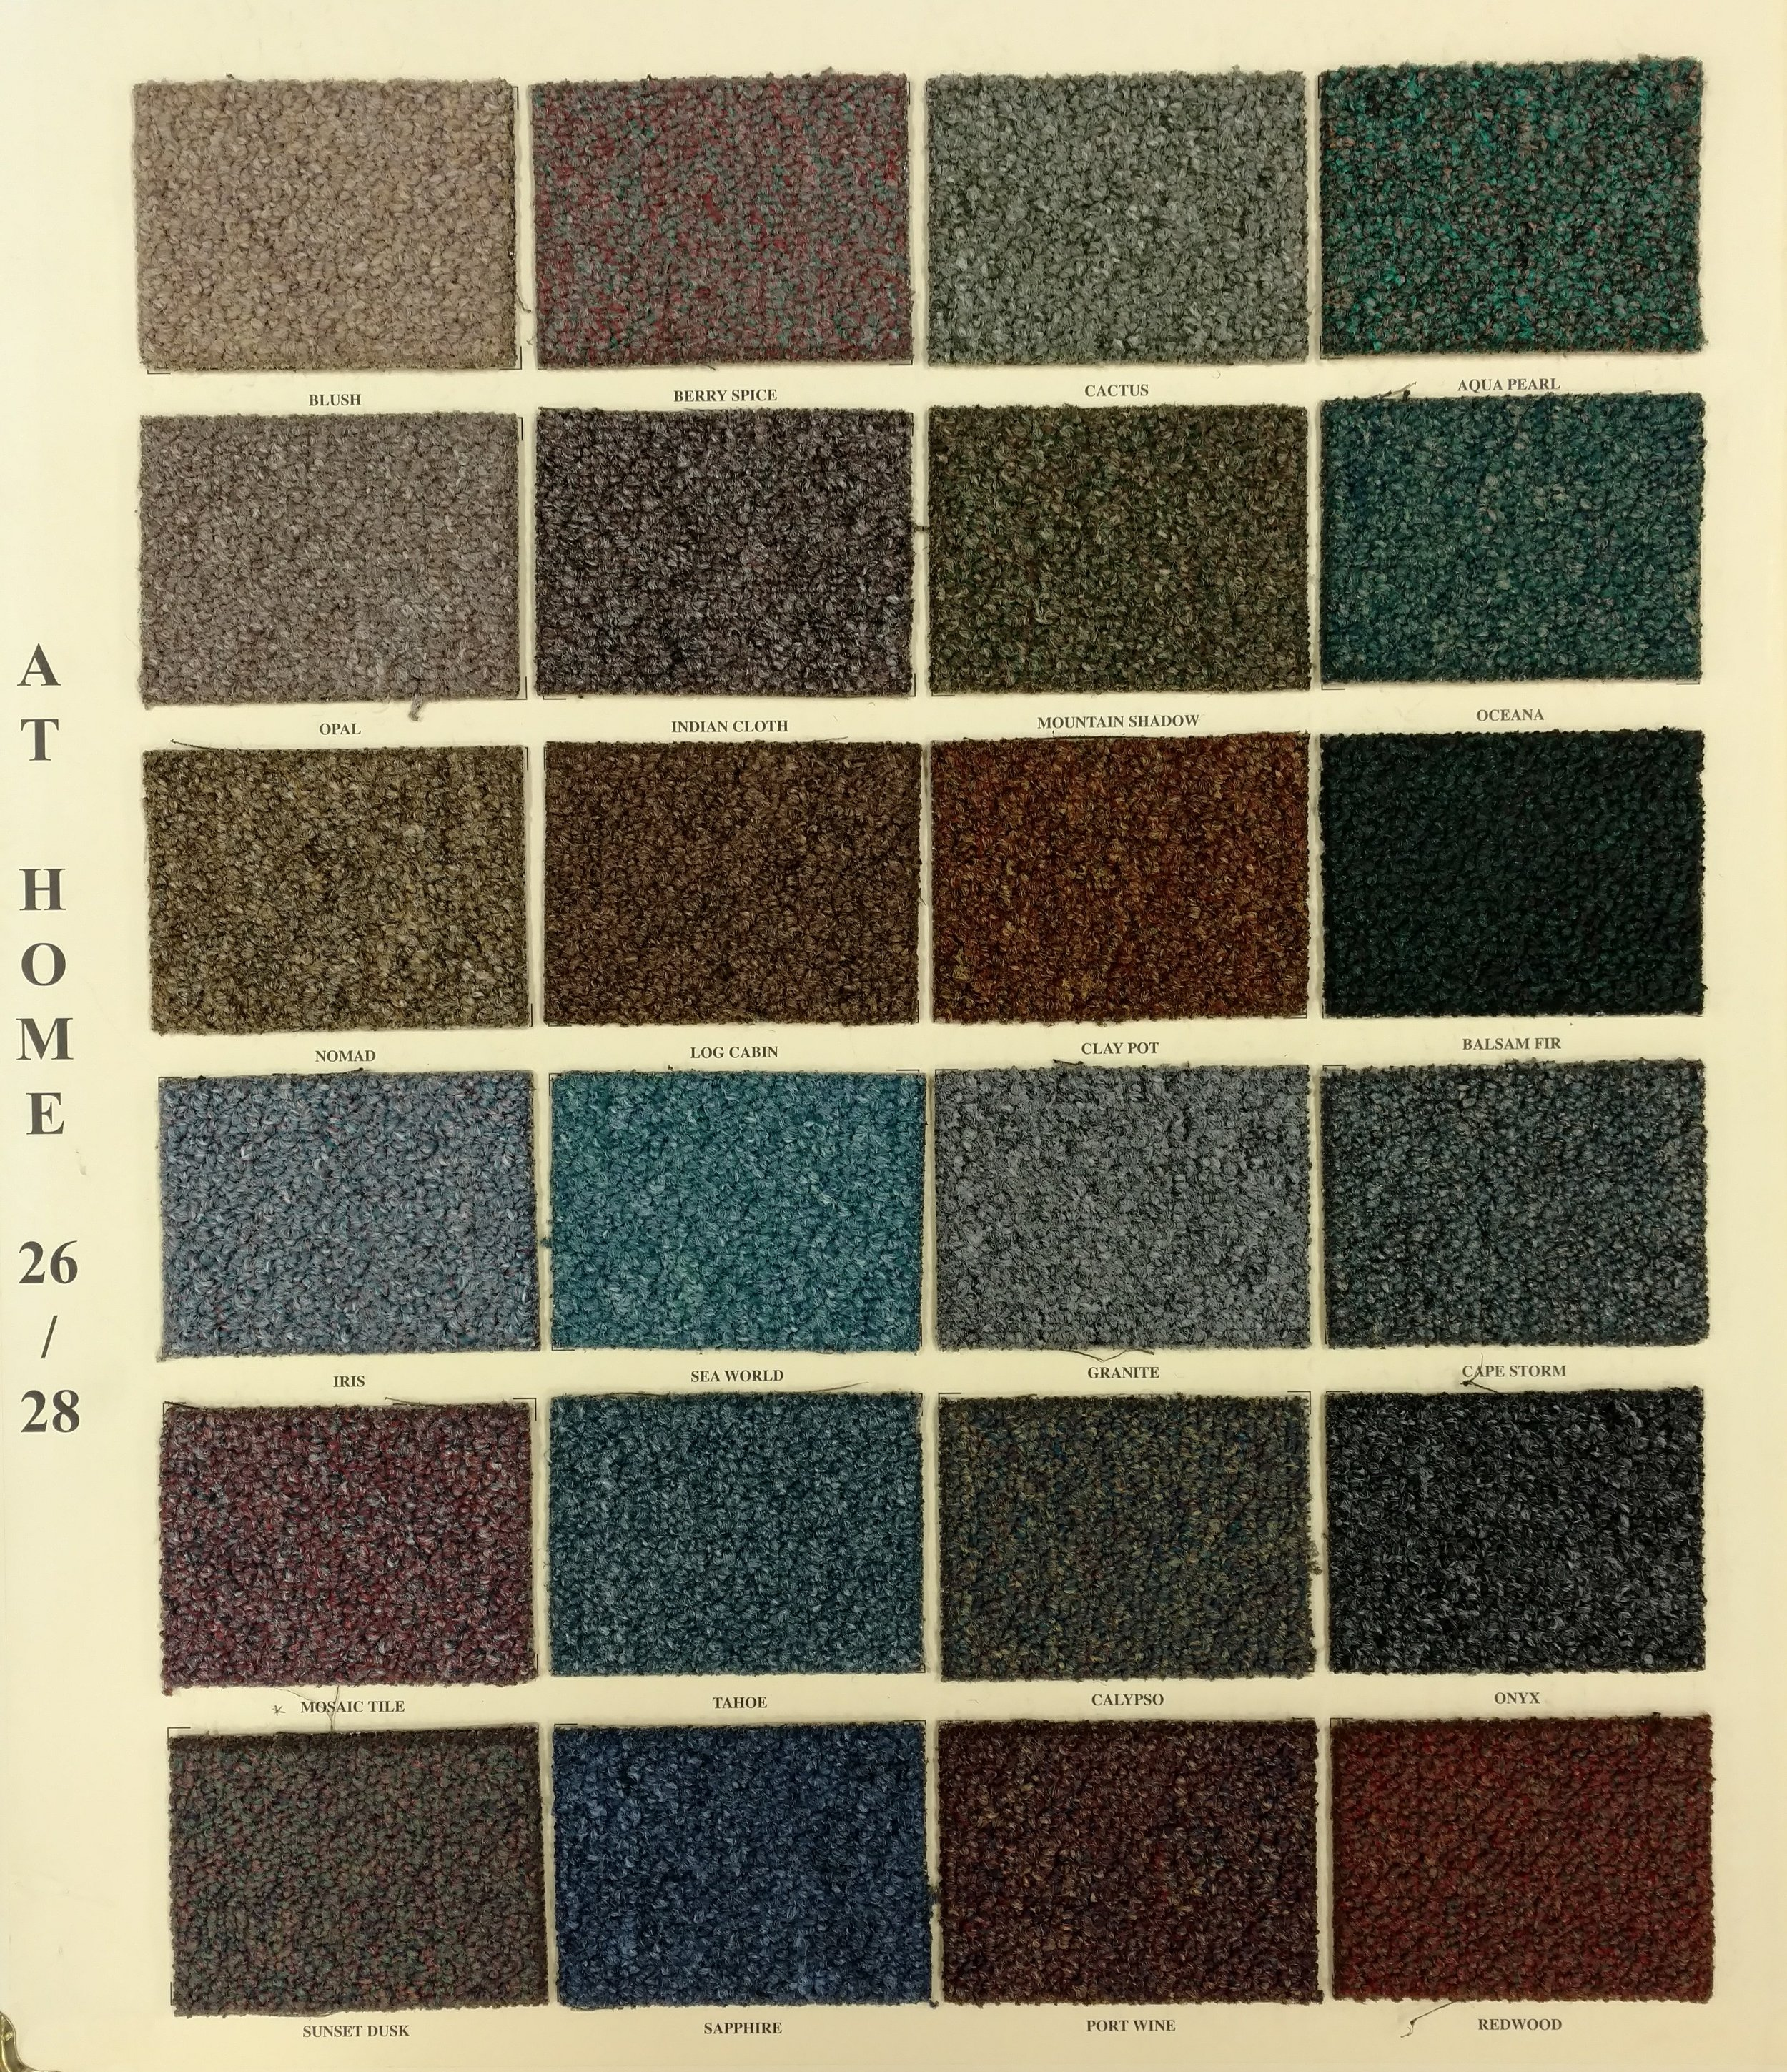 Gibraltar Commercial Carpet - At Home Colors.jpg